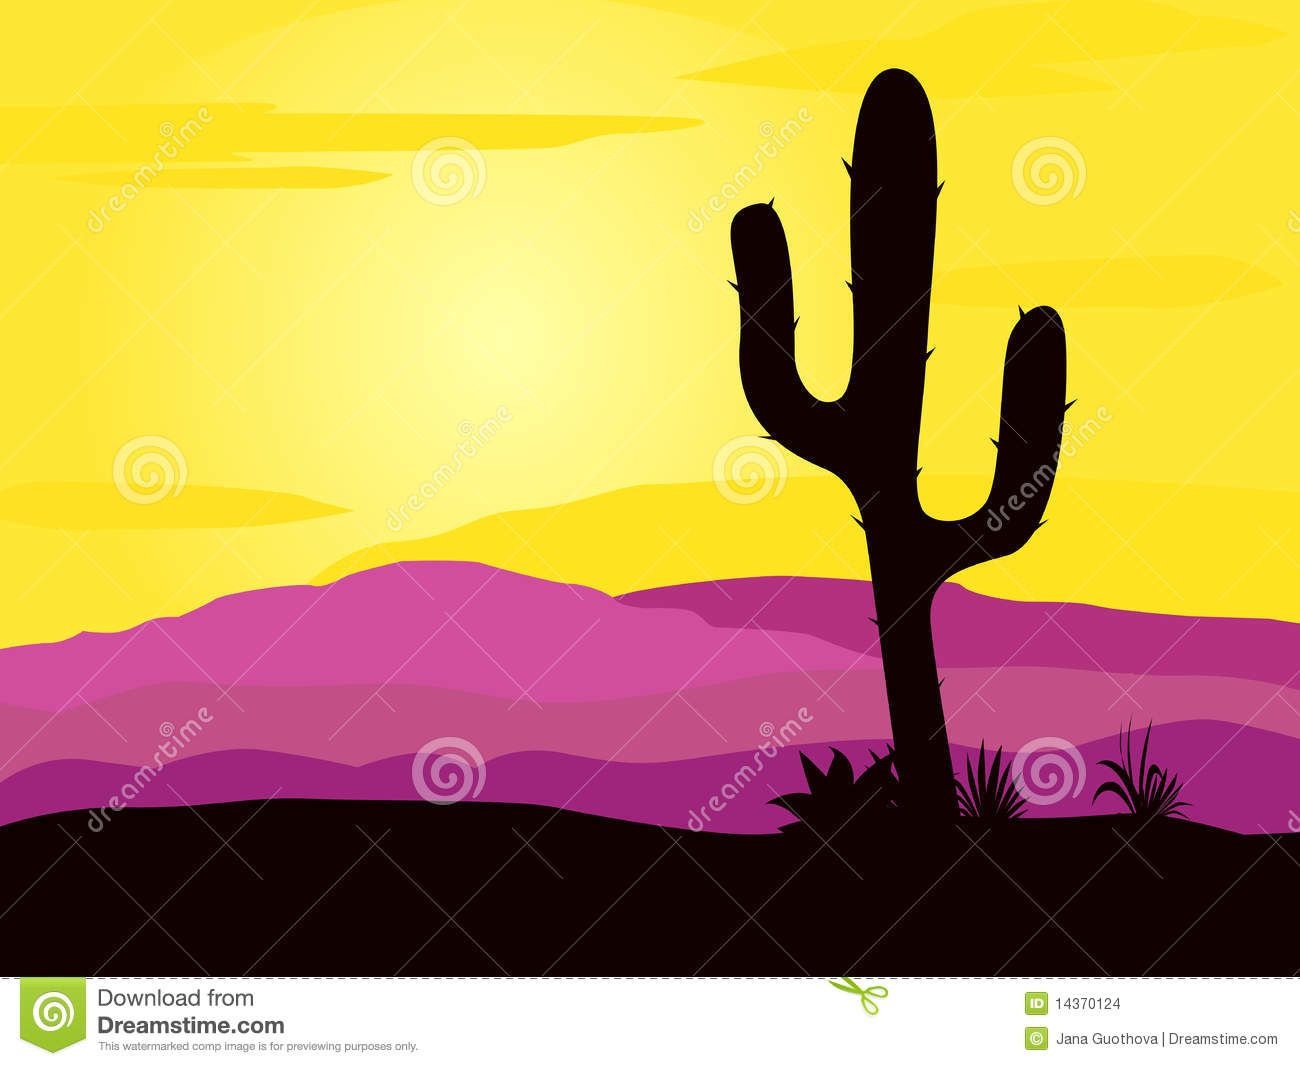 Mexico desert sunset with cactus plants silhouette